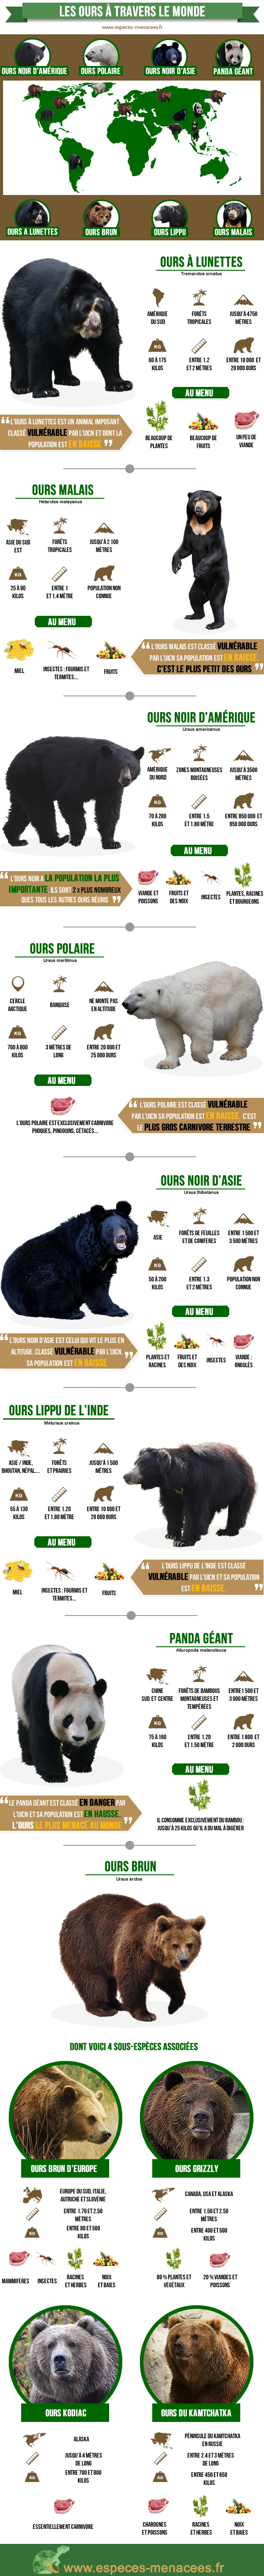 infographie ours